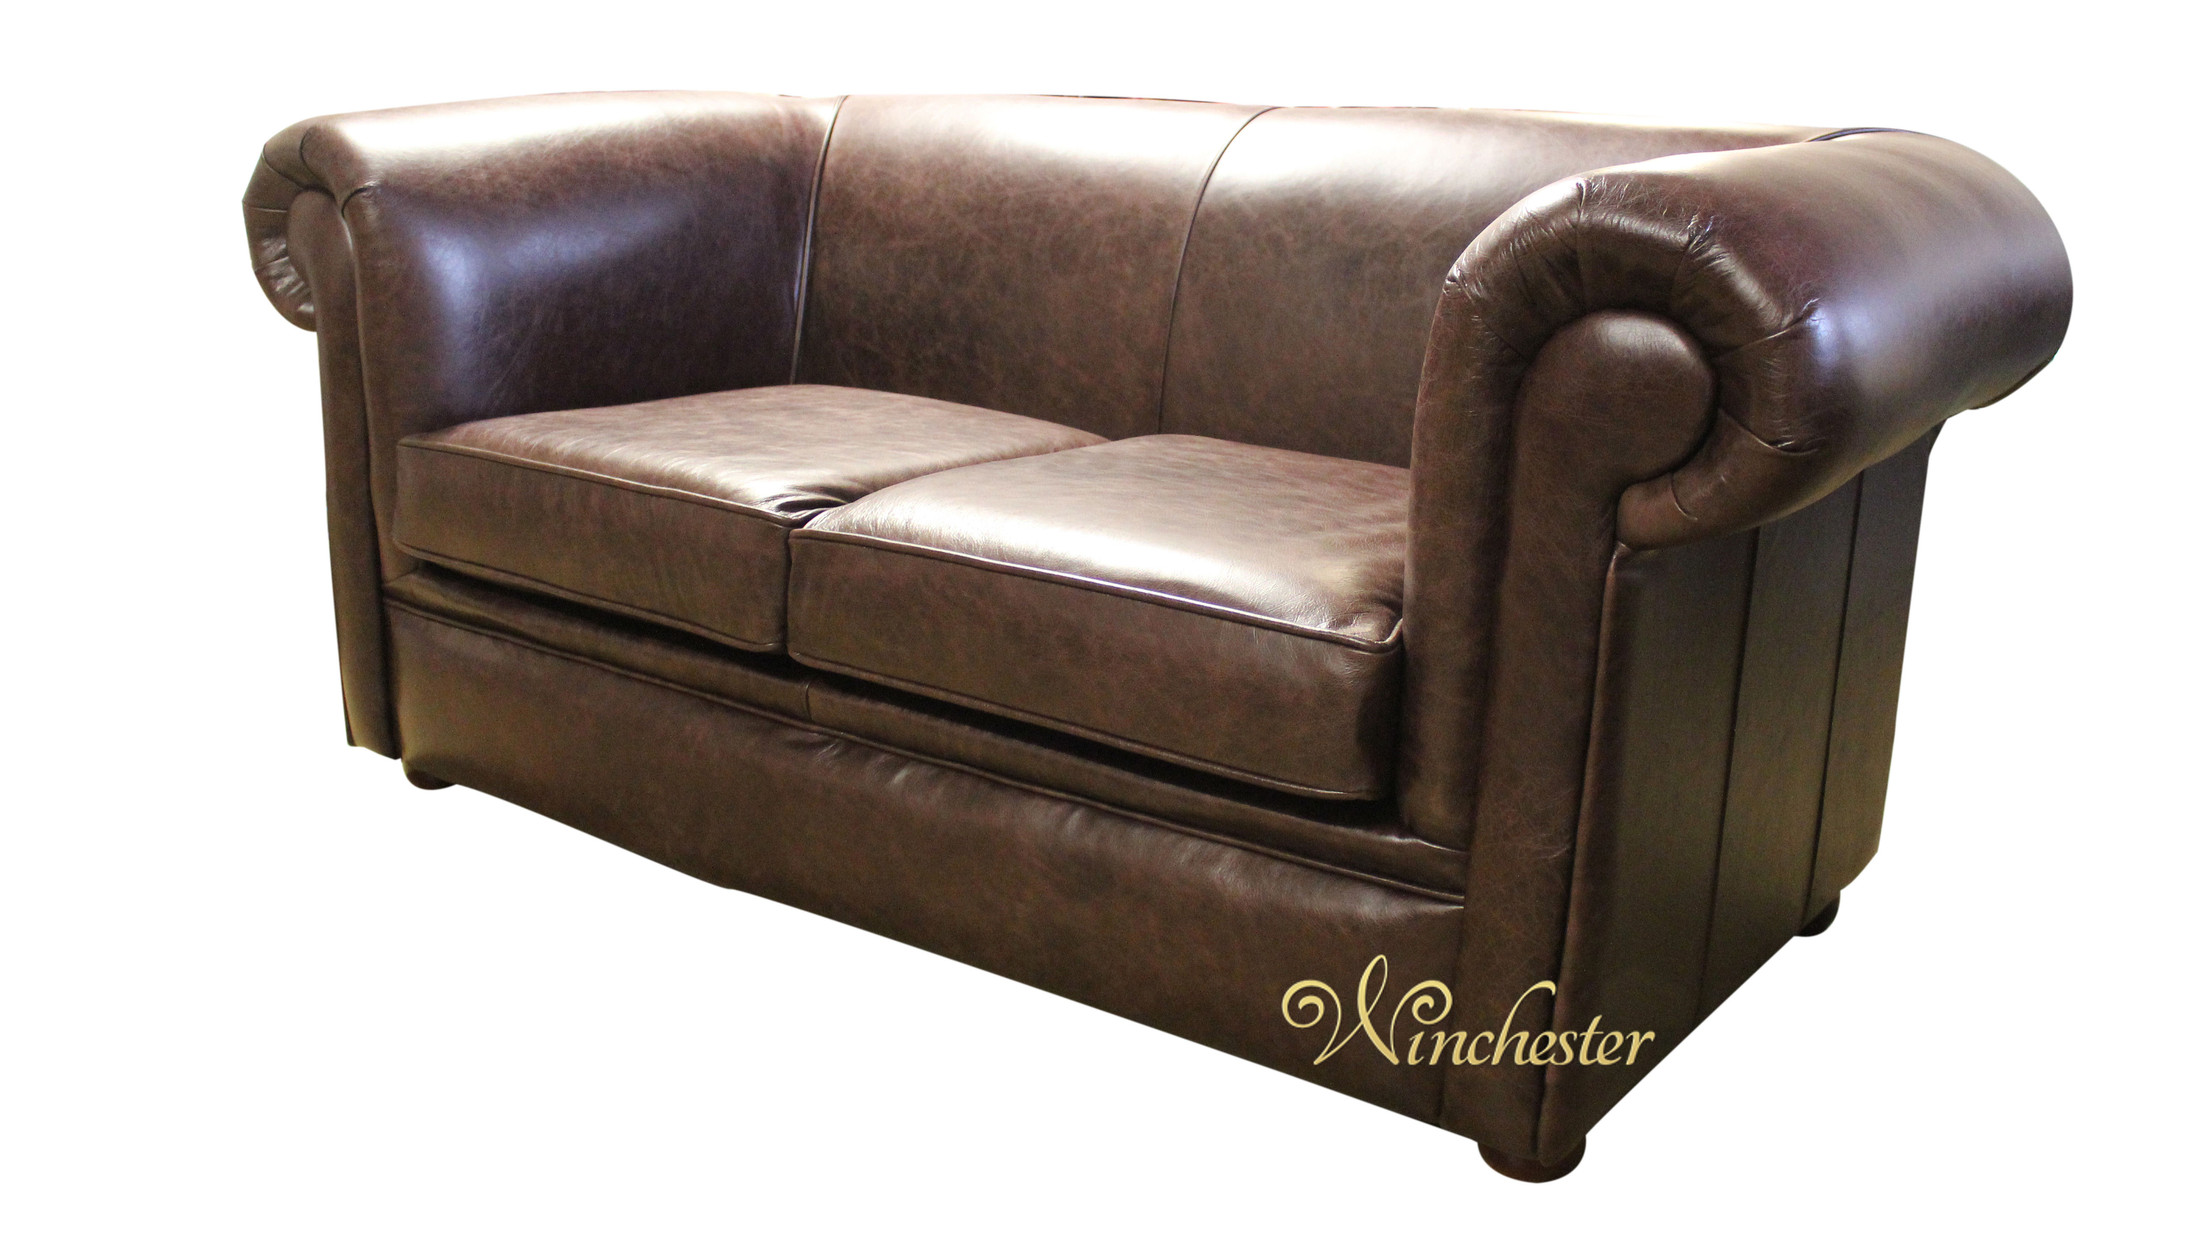 Chesterfield 1930u0027s 2 Seater Settee Old English Dark Brown Leather Sofa